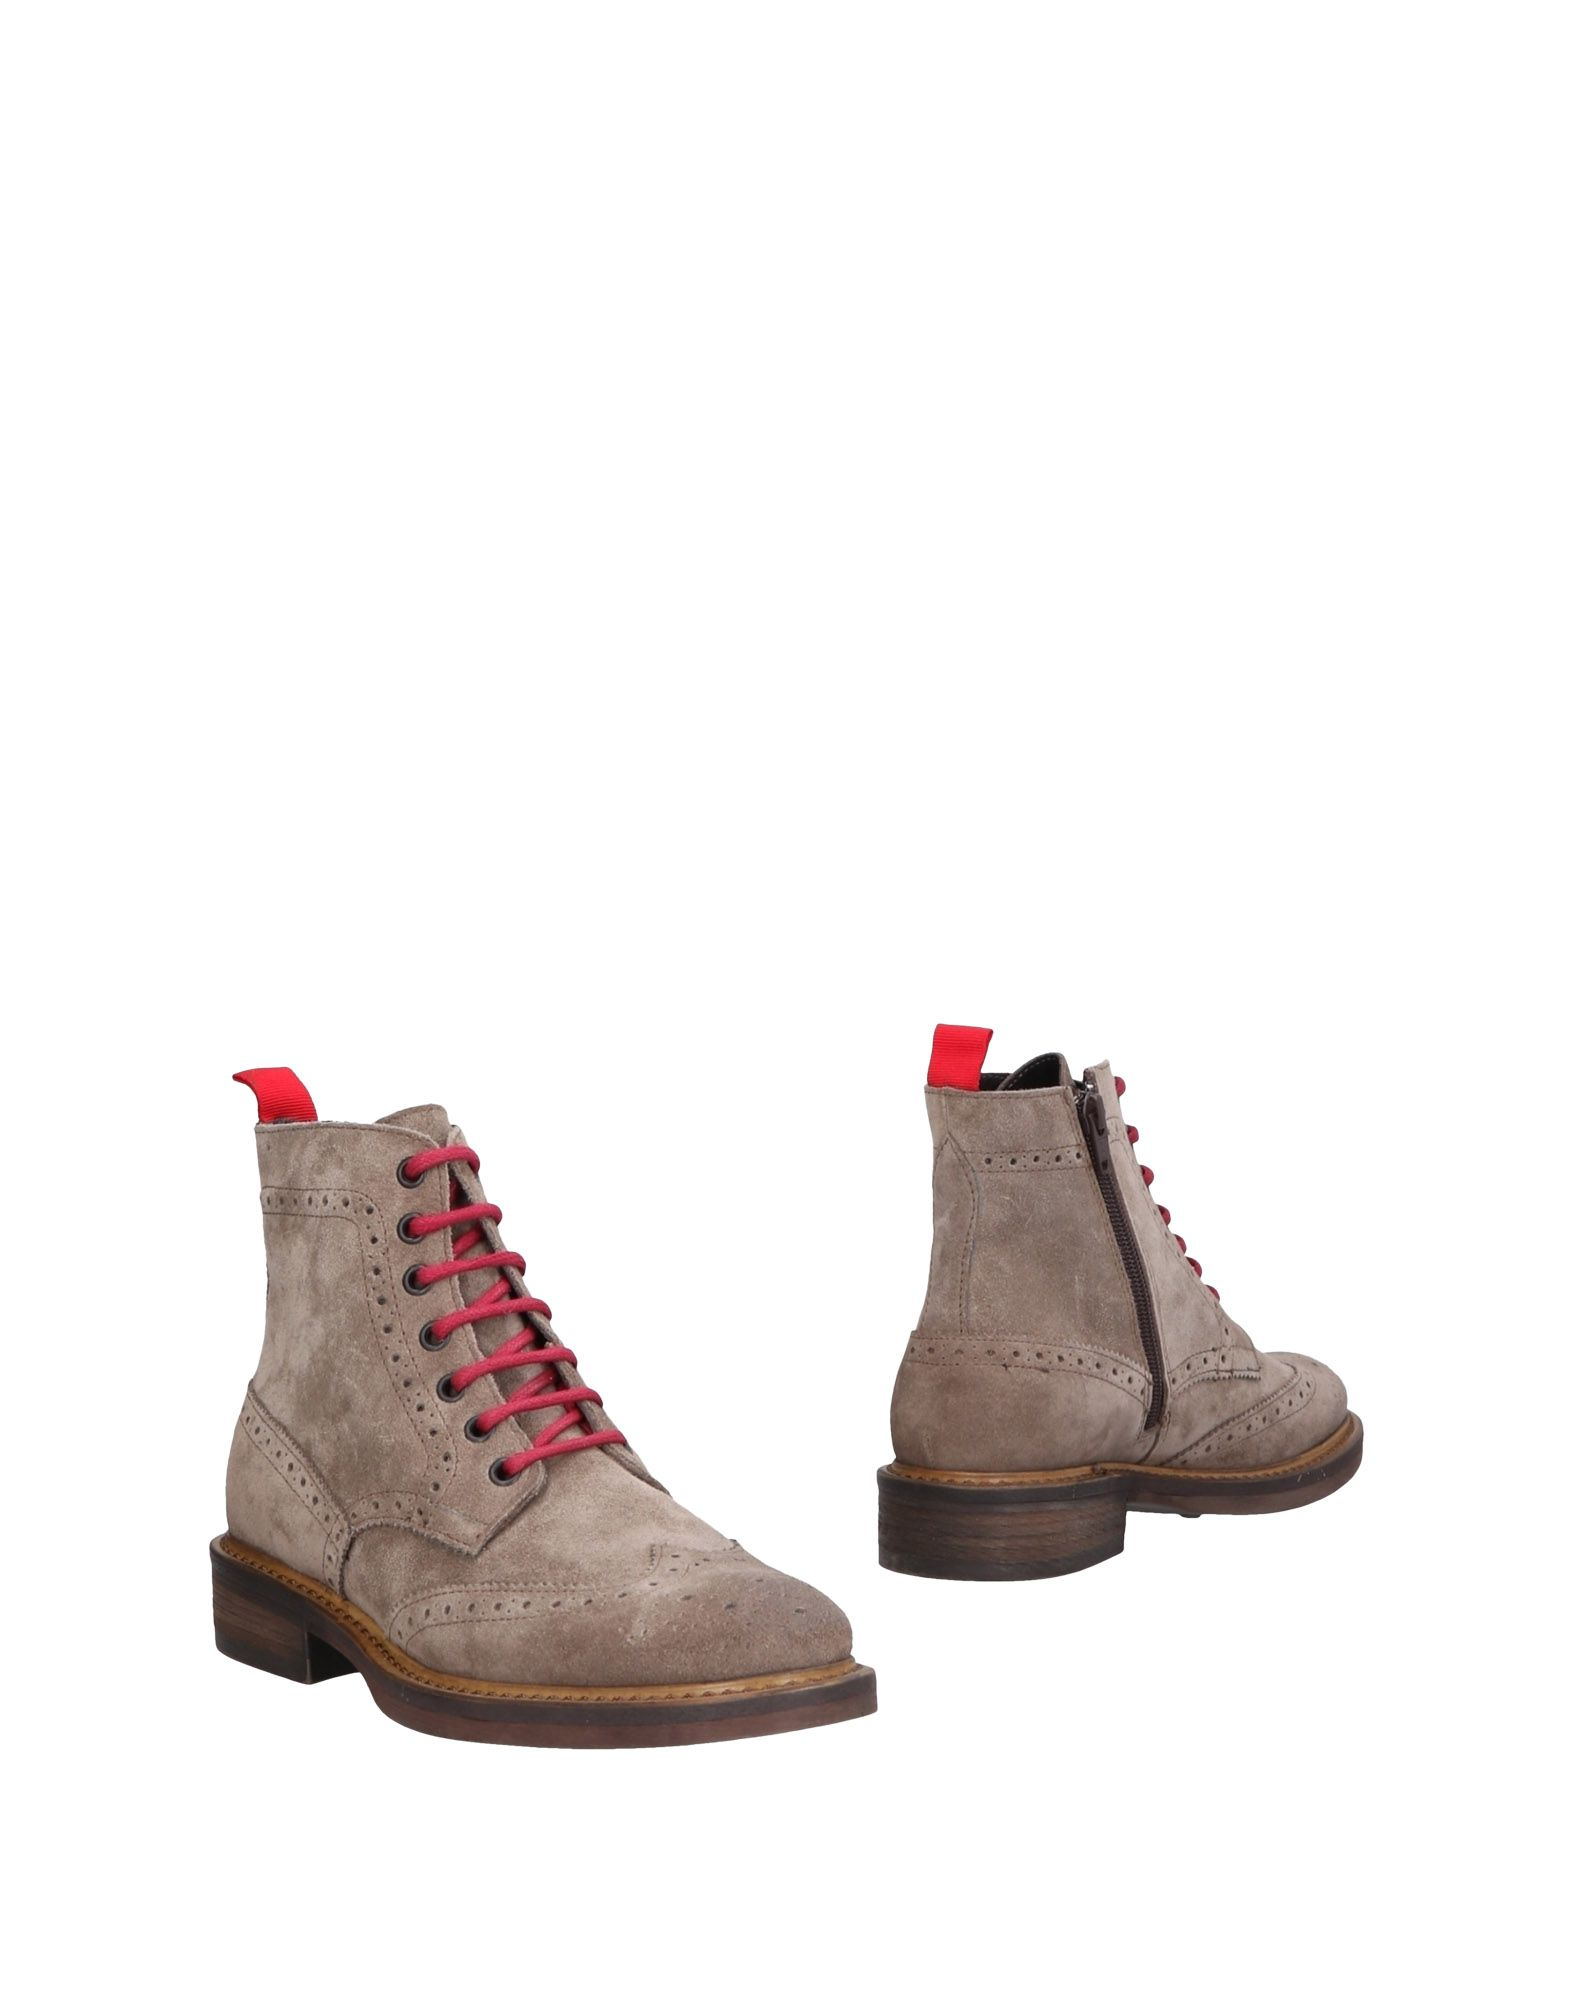 DAMA Ankle Boots in Grey